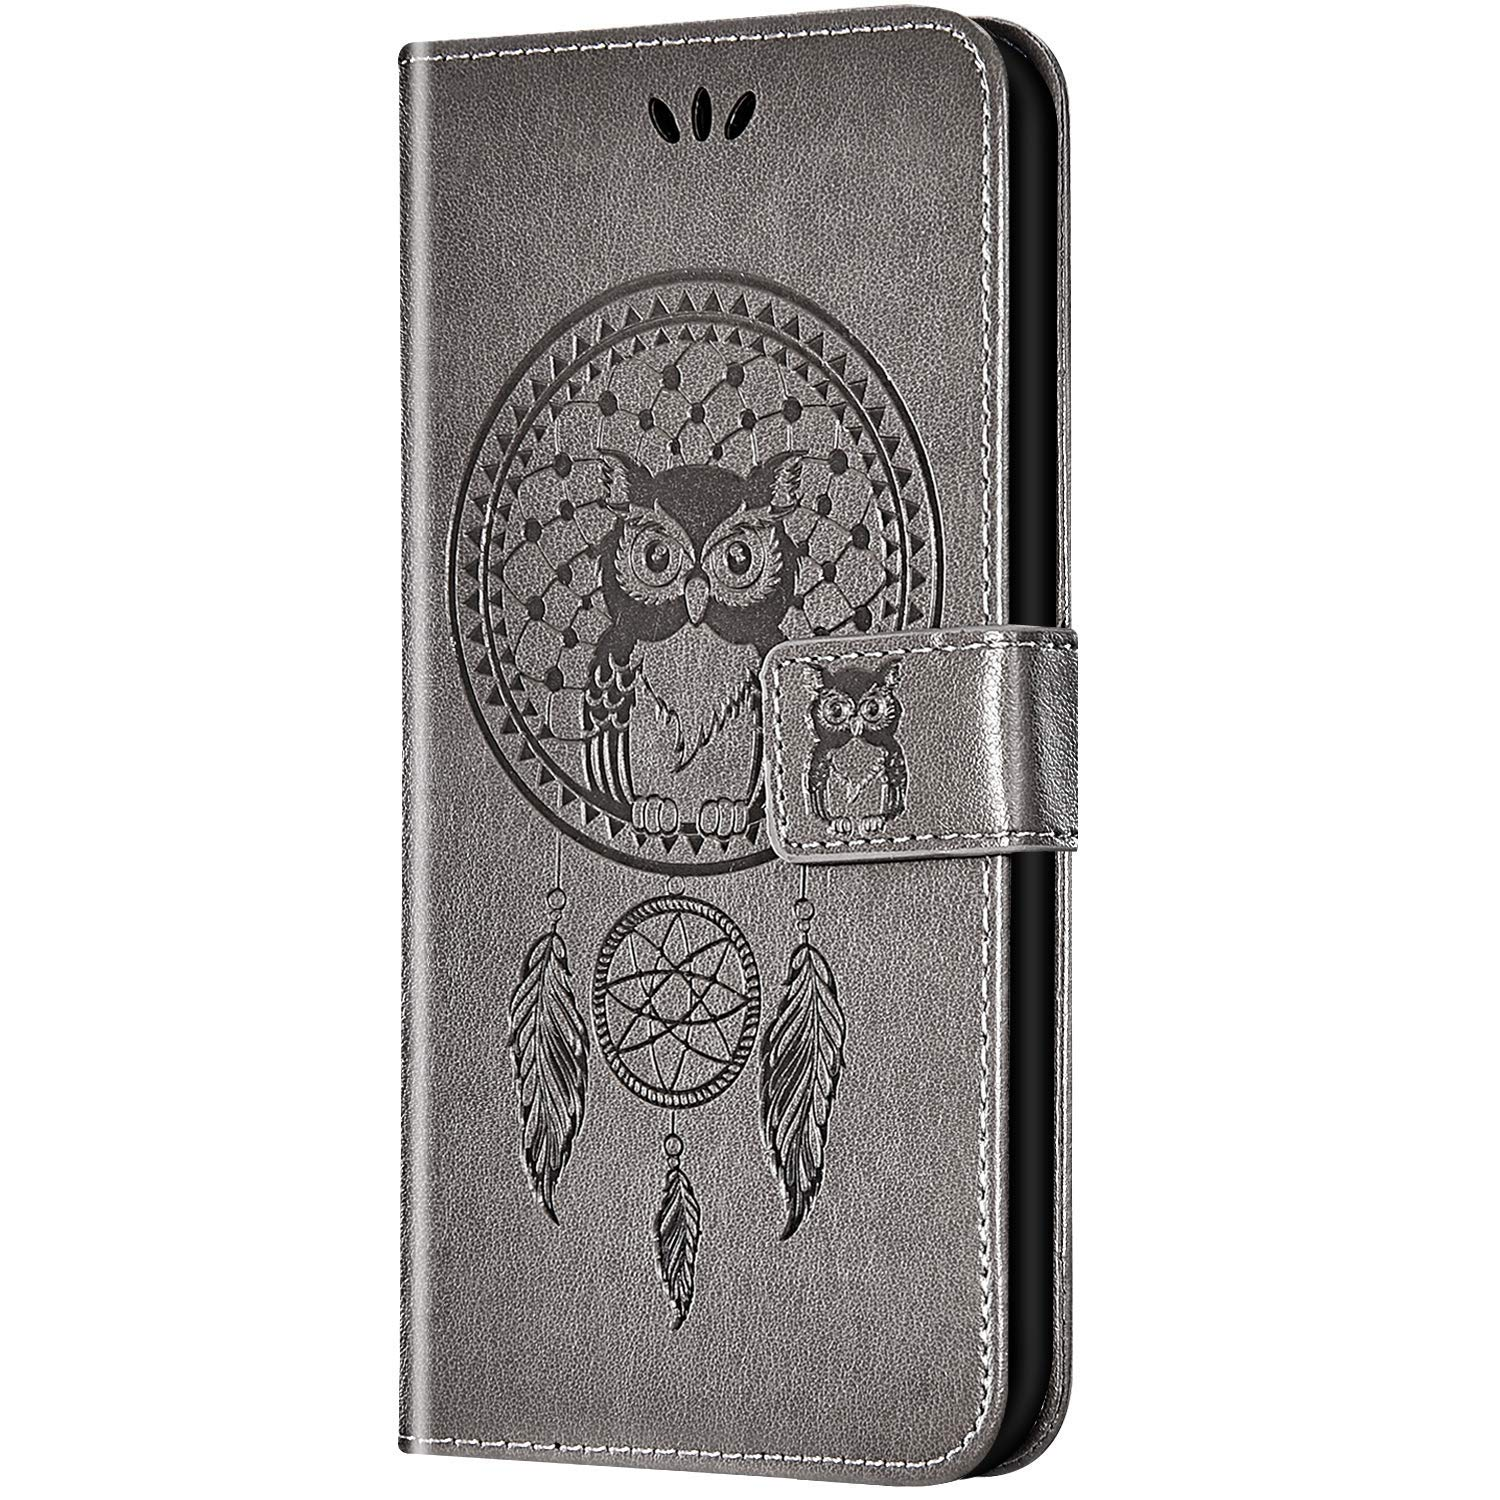 Case for Galaxy A50 Flip Case Ultra Slim PU Leather Wallet with Card Holder/Slot and Magnetic Closure Shockproof Cartoon Animal Owl Embossed Protective Cover for Galaxy A50,Gray by ikasus